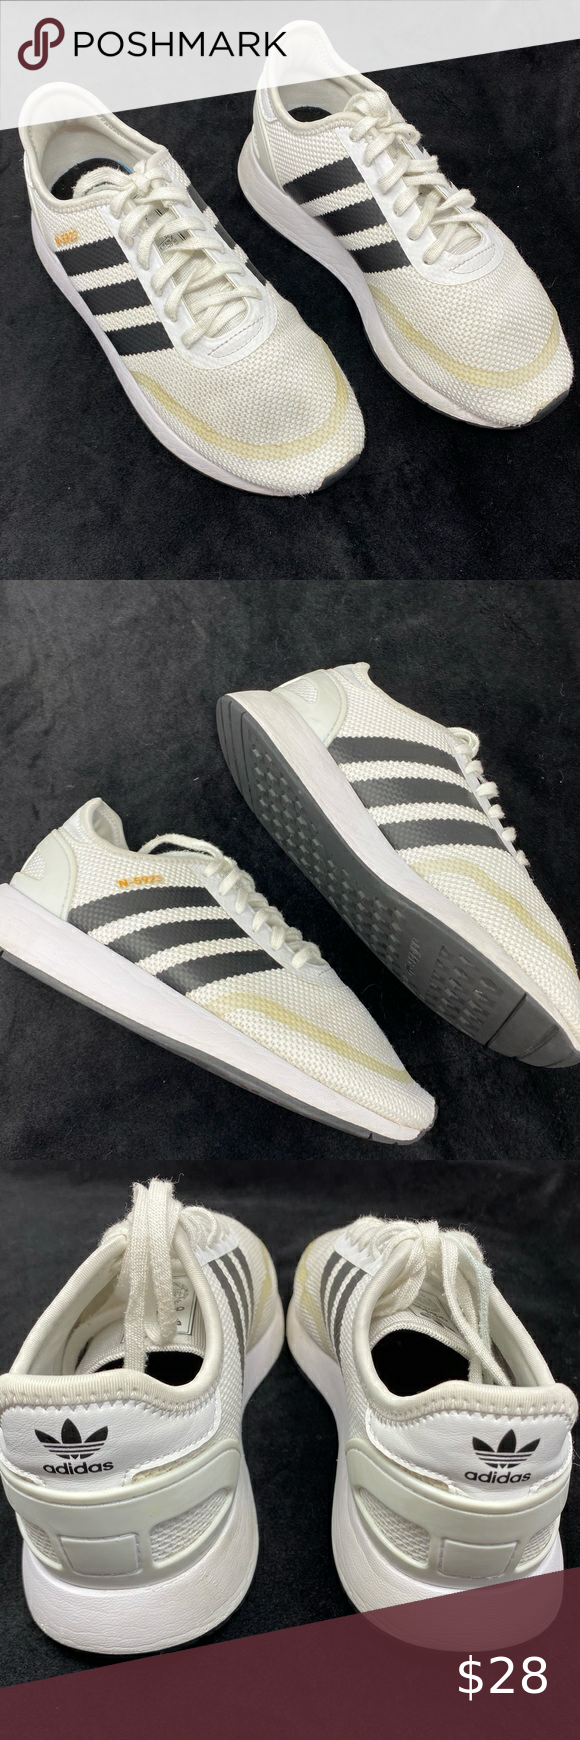 Adidas Mens sneakers size 6.5 Adidas SHW 675001 Athletic Shoes ...